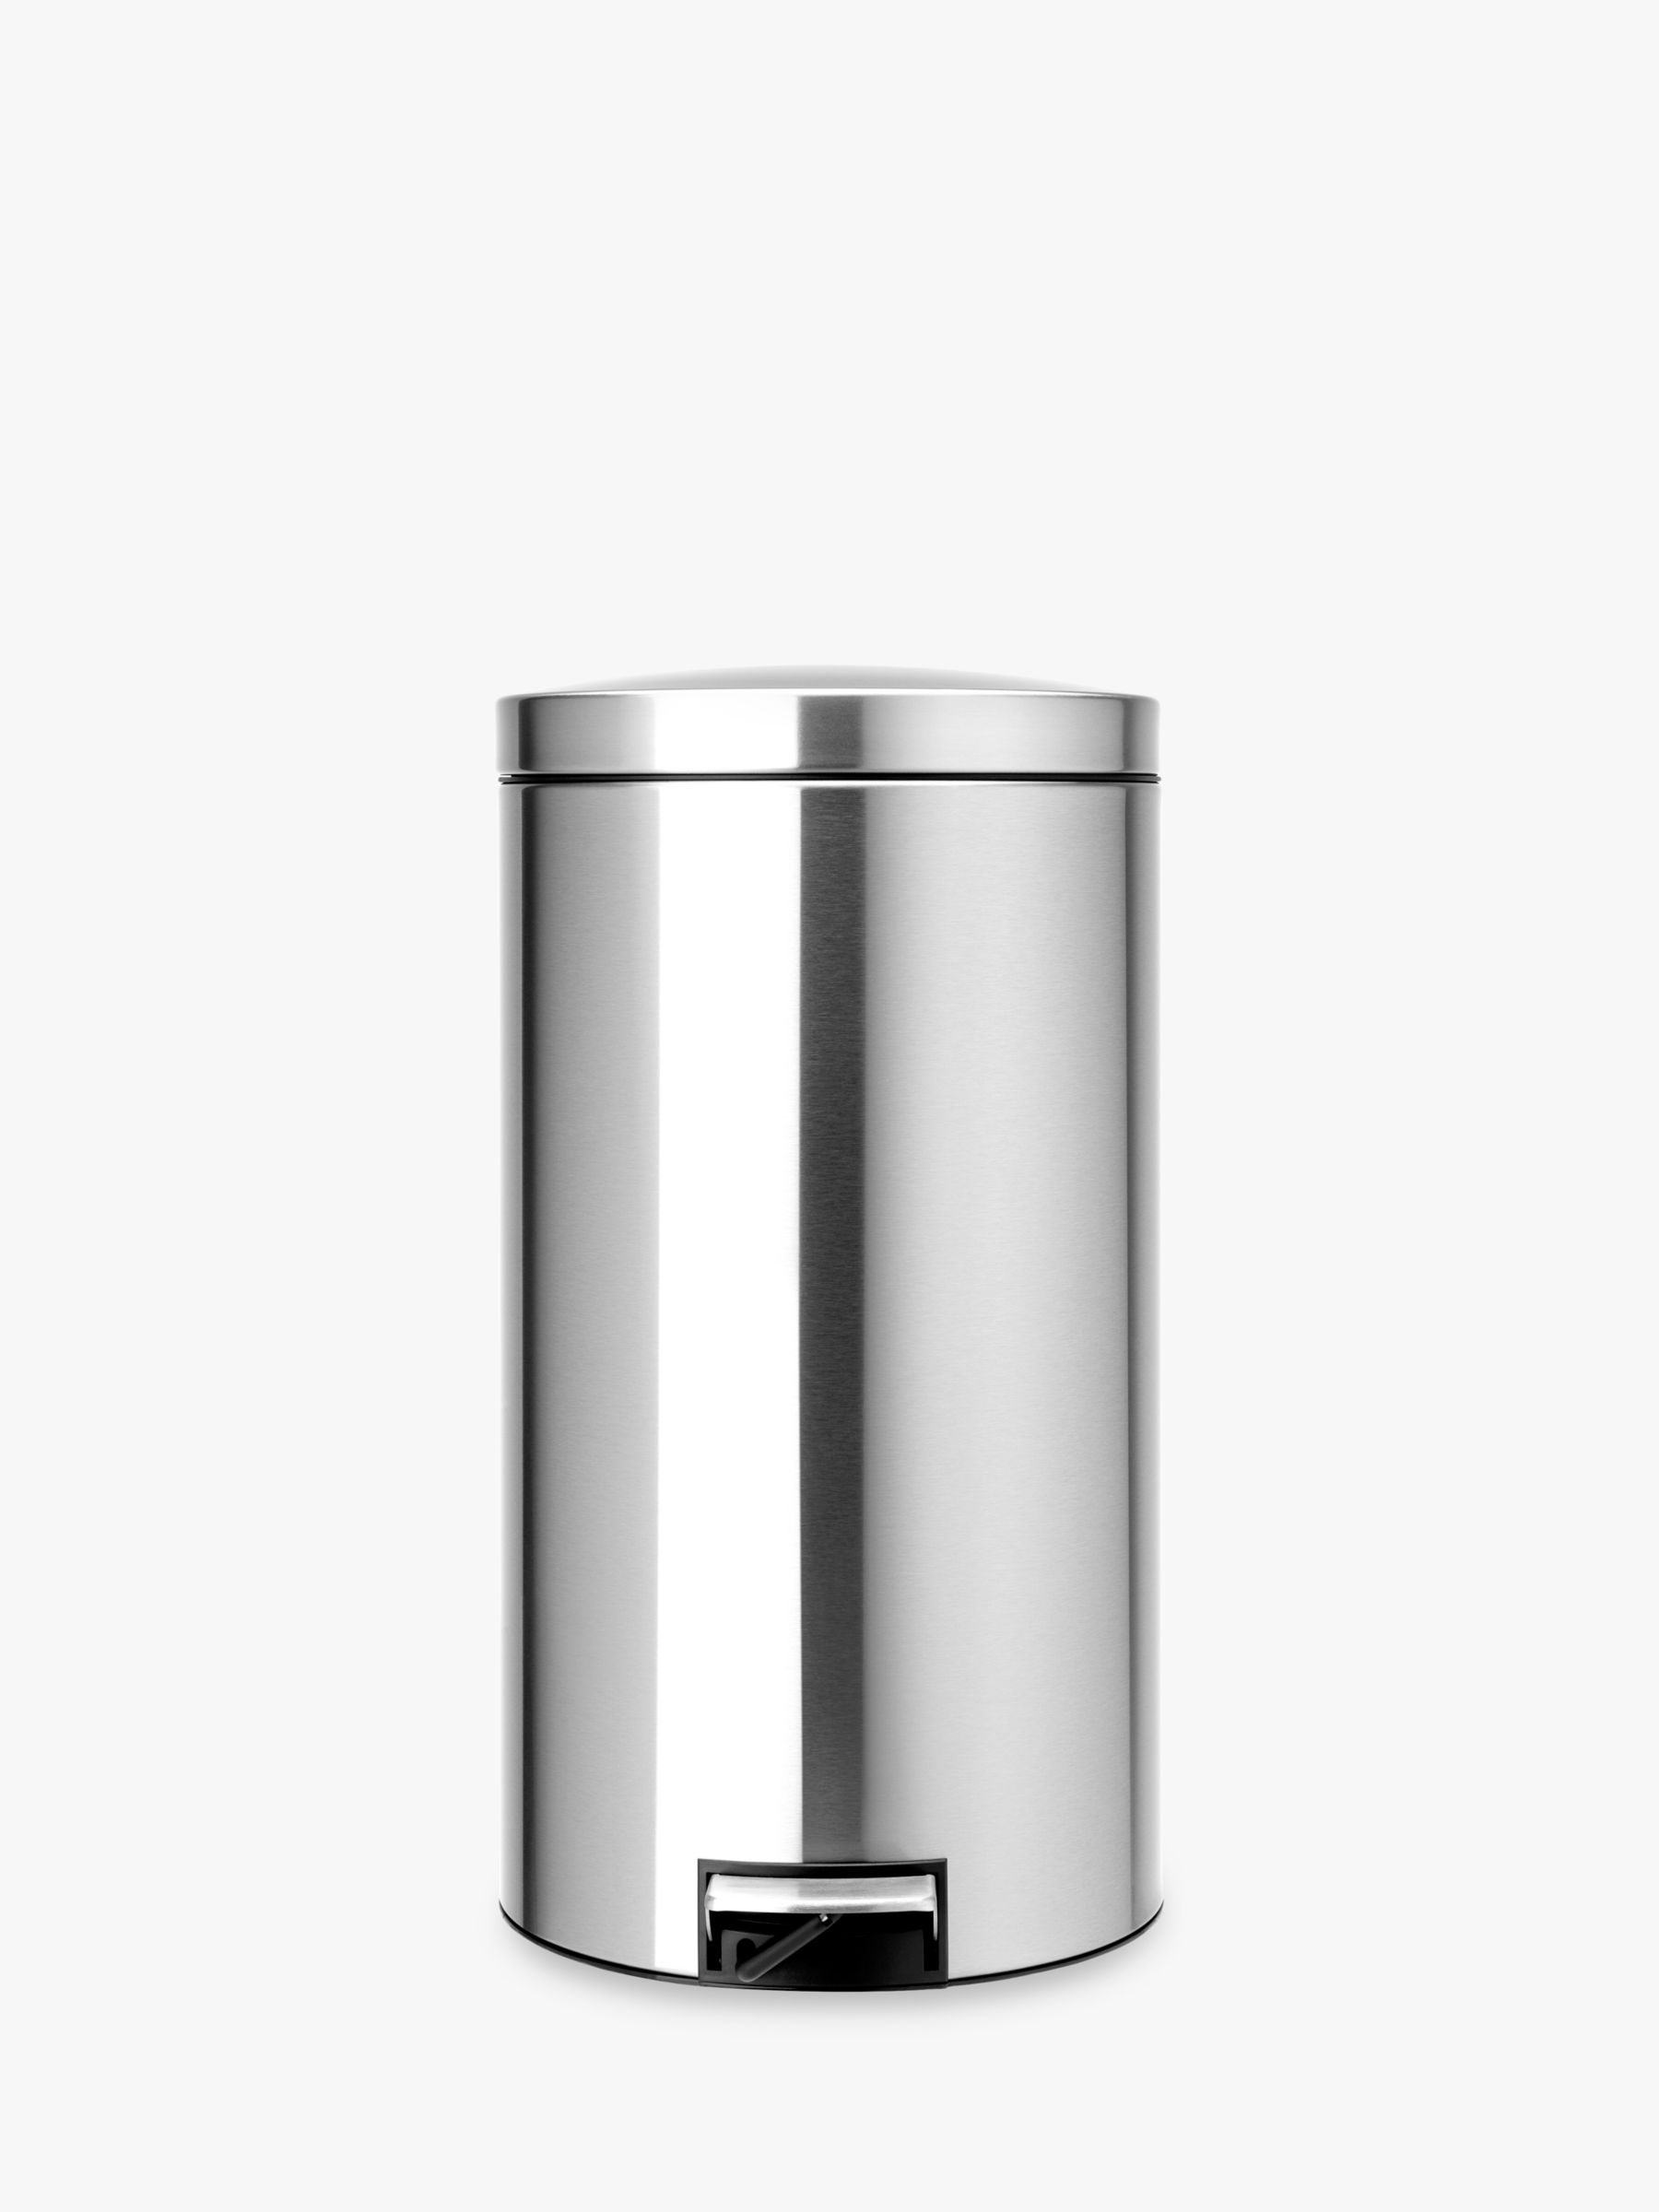 Brabantia Brabantia Twin Bin, Fingerprint Proof Matt Steel, 20L/20L